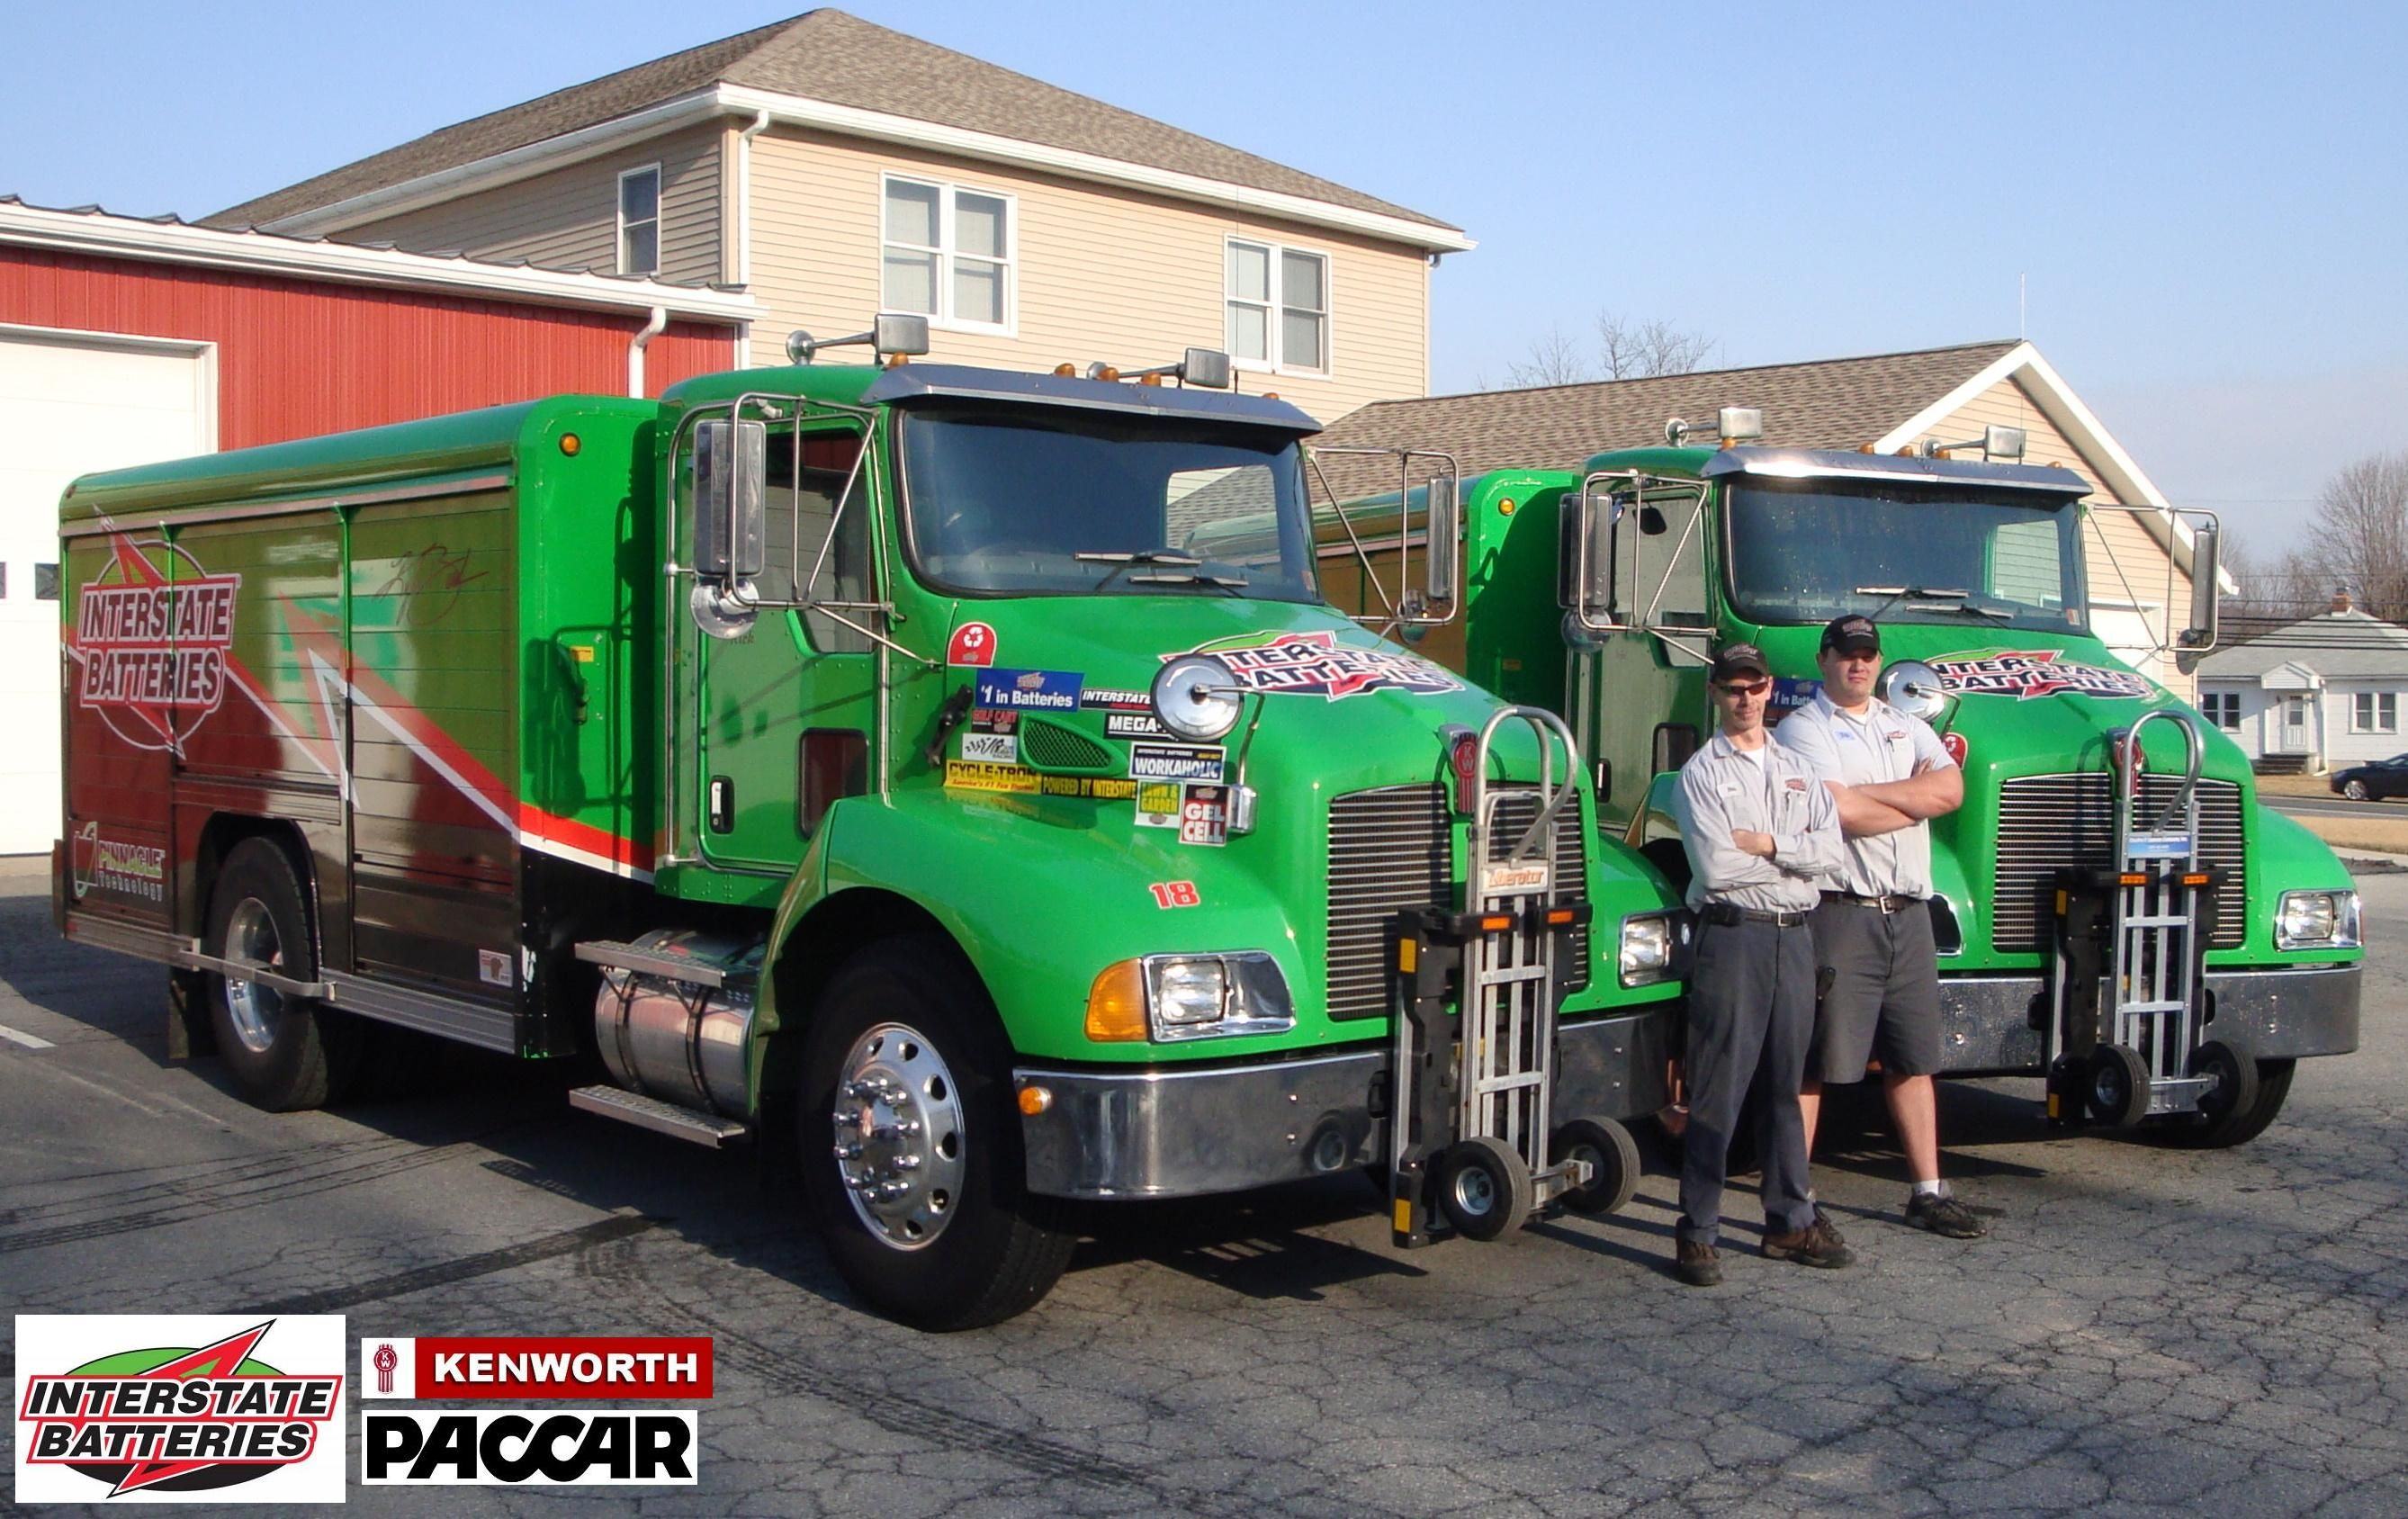 Interstate Batteries T300 Kenworth Delivery Trucks With Mickey Truck Body And Hts 10t Ultra Racks Trucks Kenworth Hand Trucks